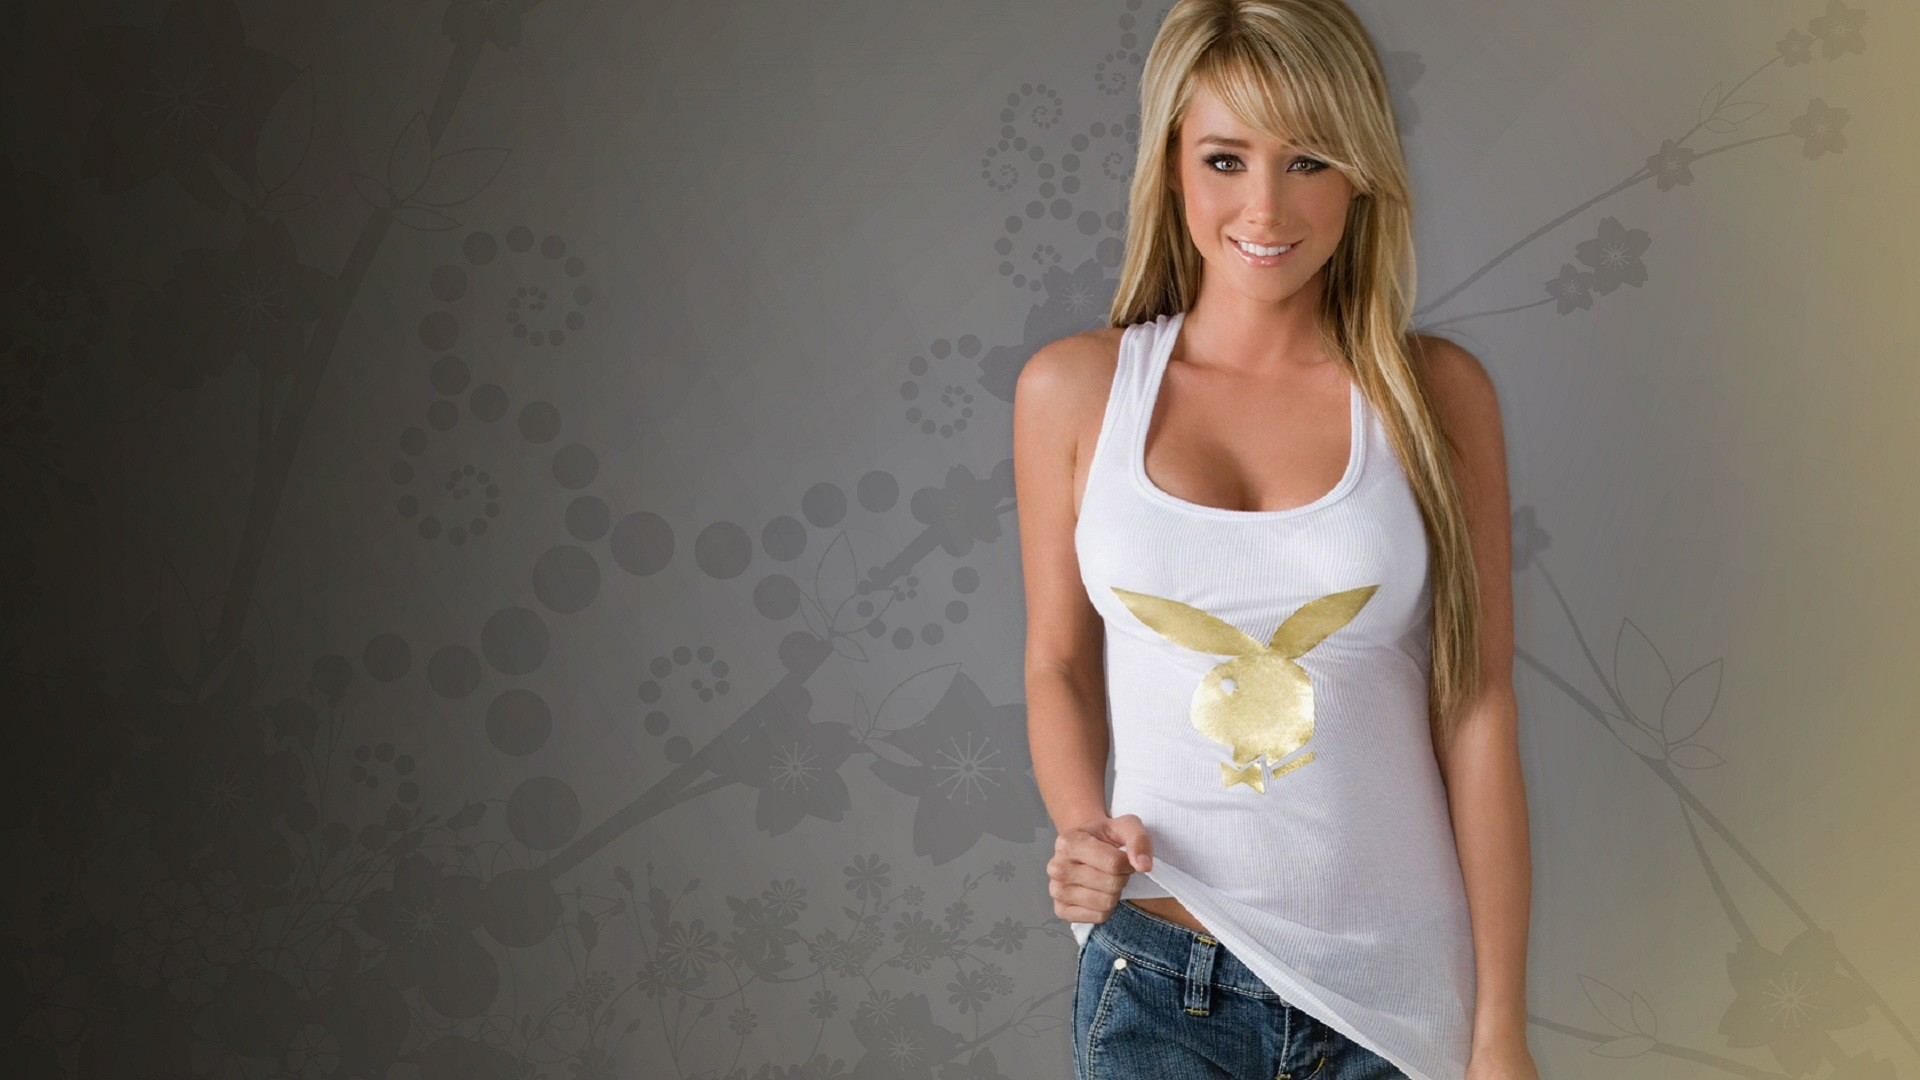 Sporty girl in white tank top wallpapers and images   wallpapers 1920x1080